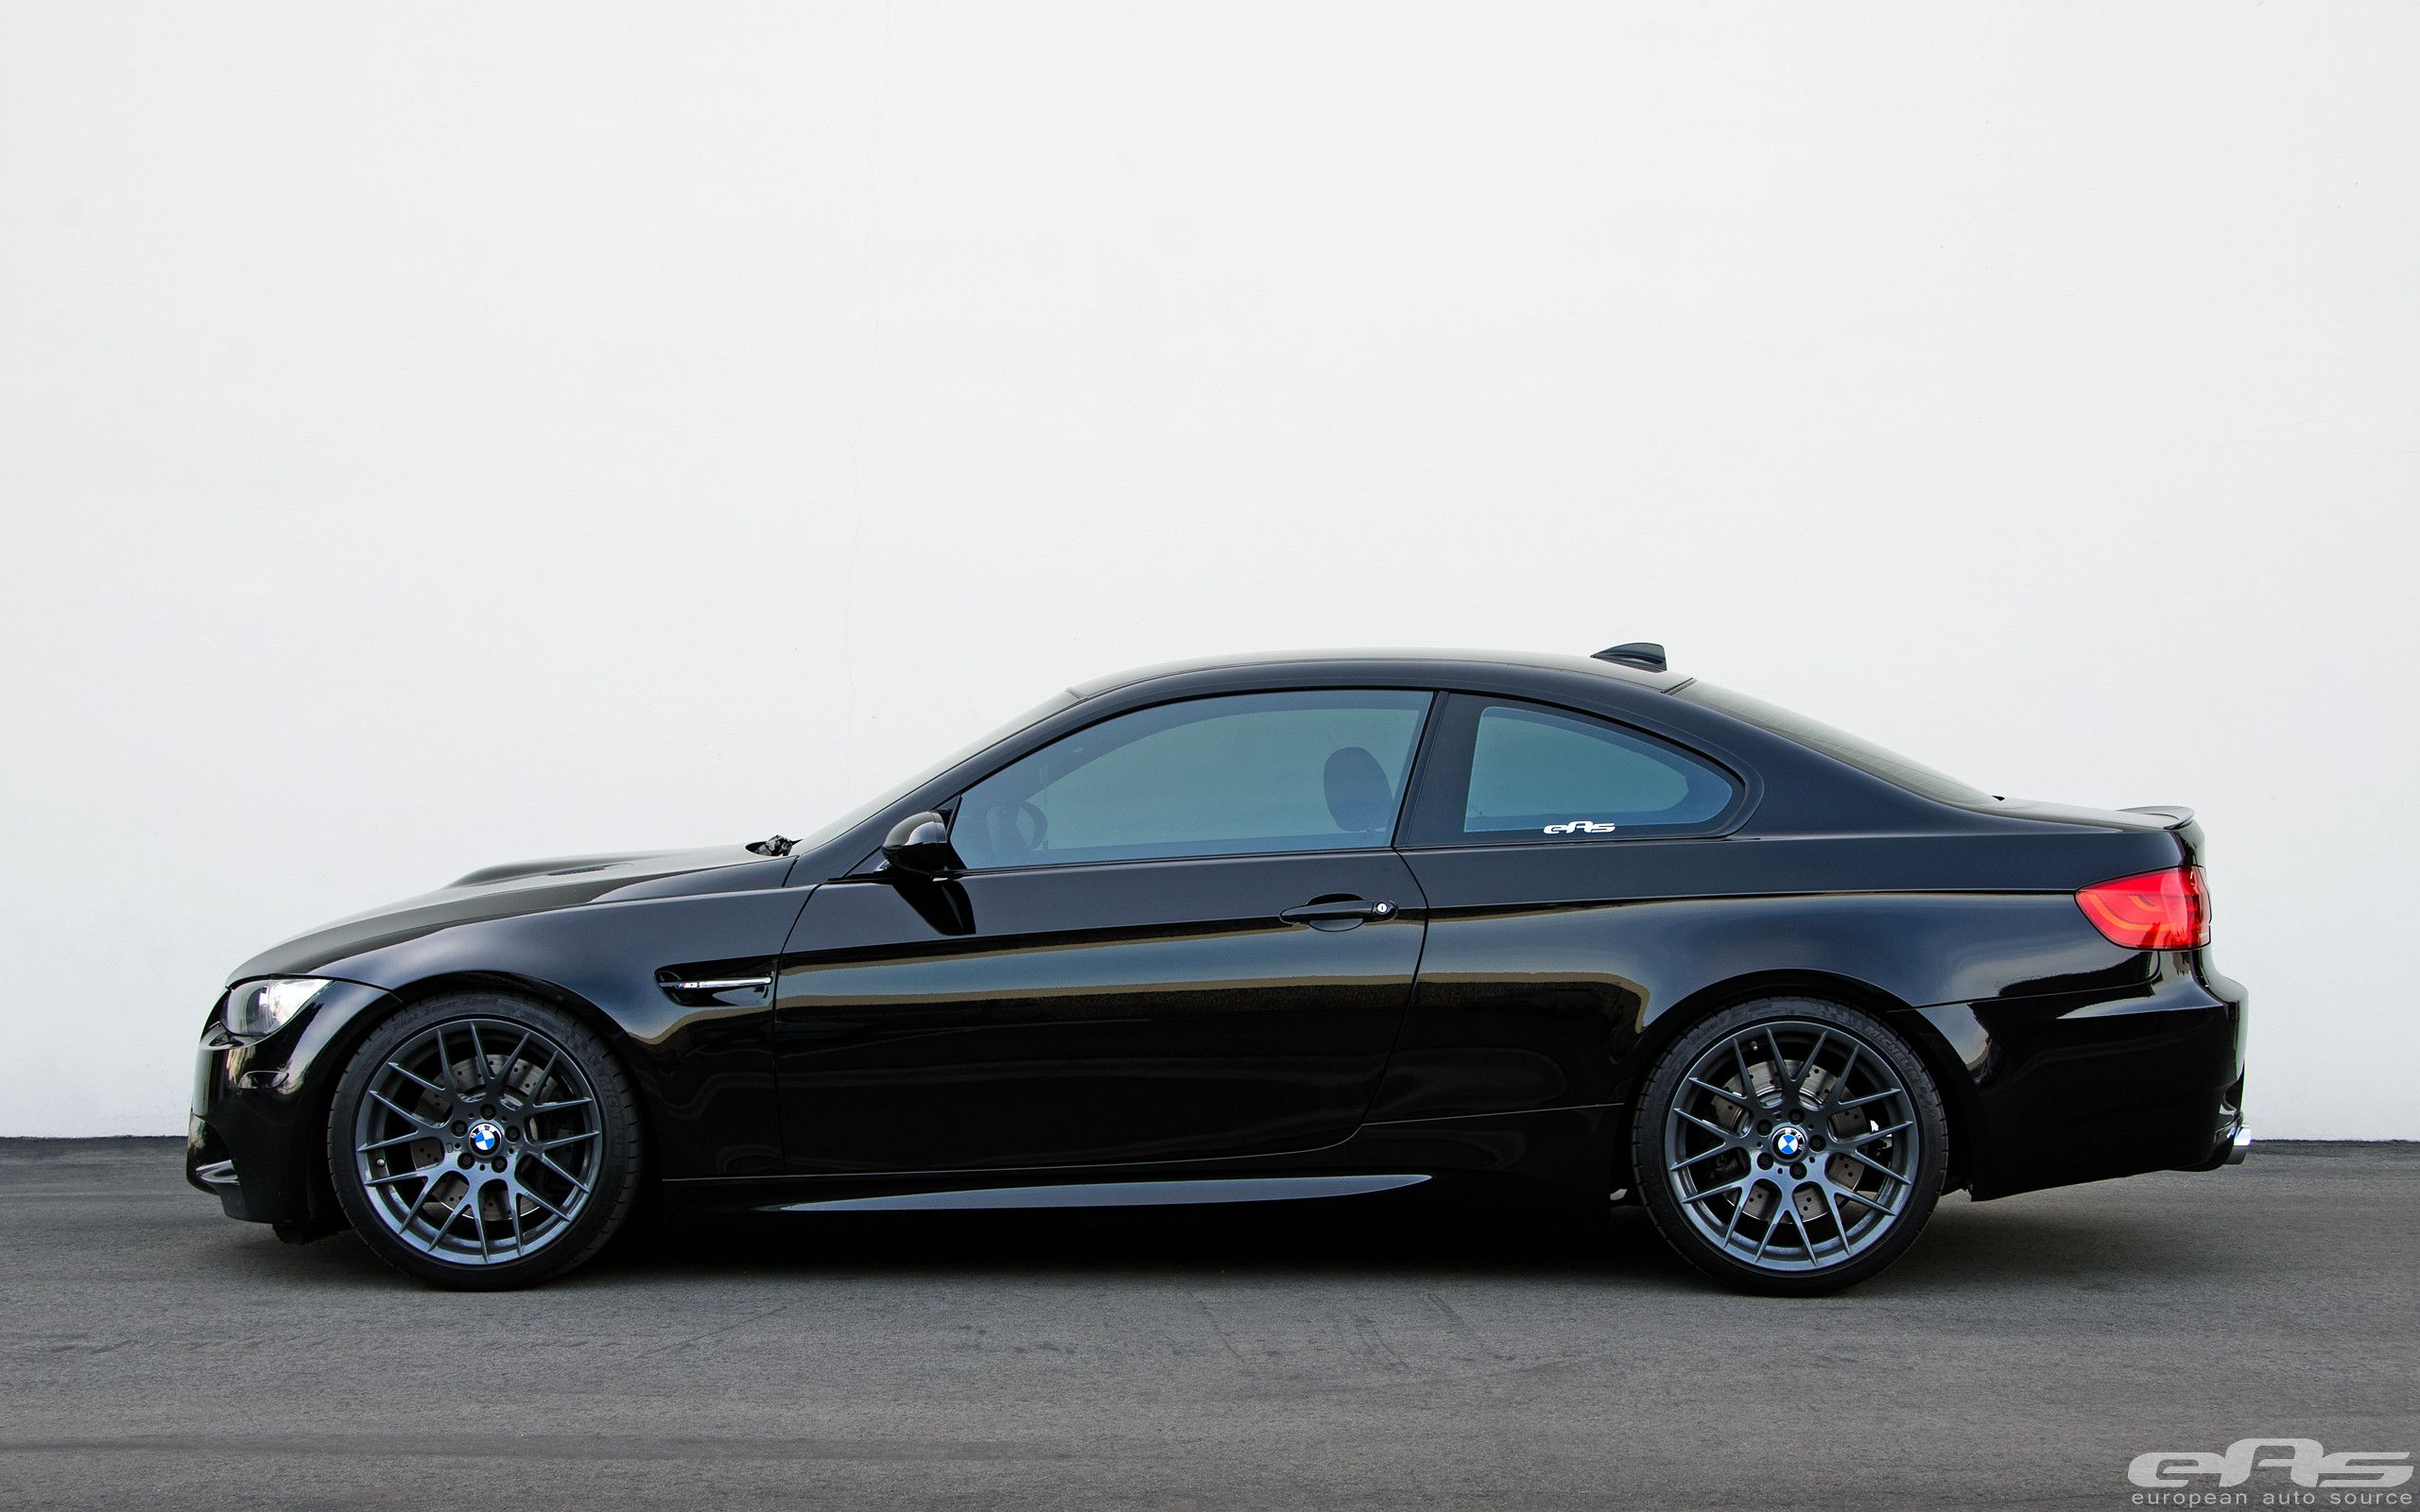 Jet Black E92 M3 01 In 2020 Custom Bmw Bmw Coupe Bmw M3 Coupe